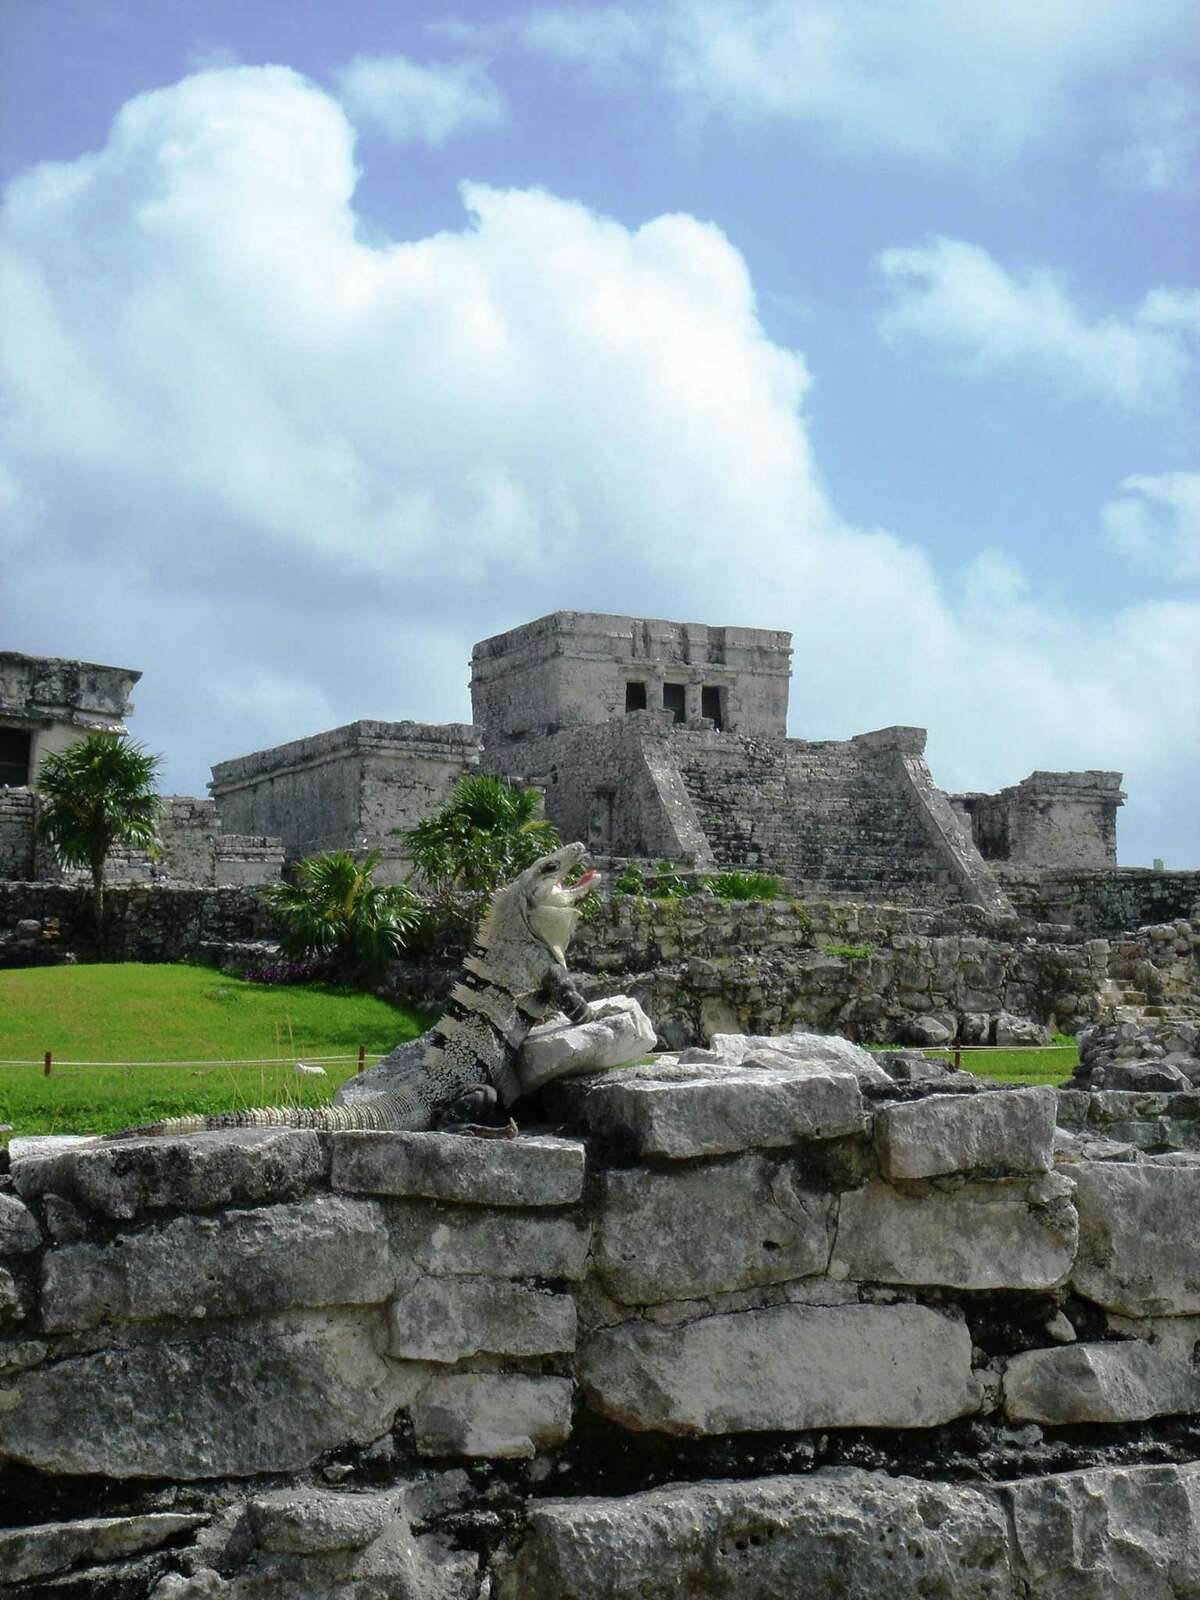 Tulum on Mexico's Yucatan Peninsula is one of the country's most important Mayan sites.